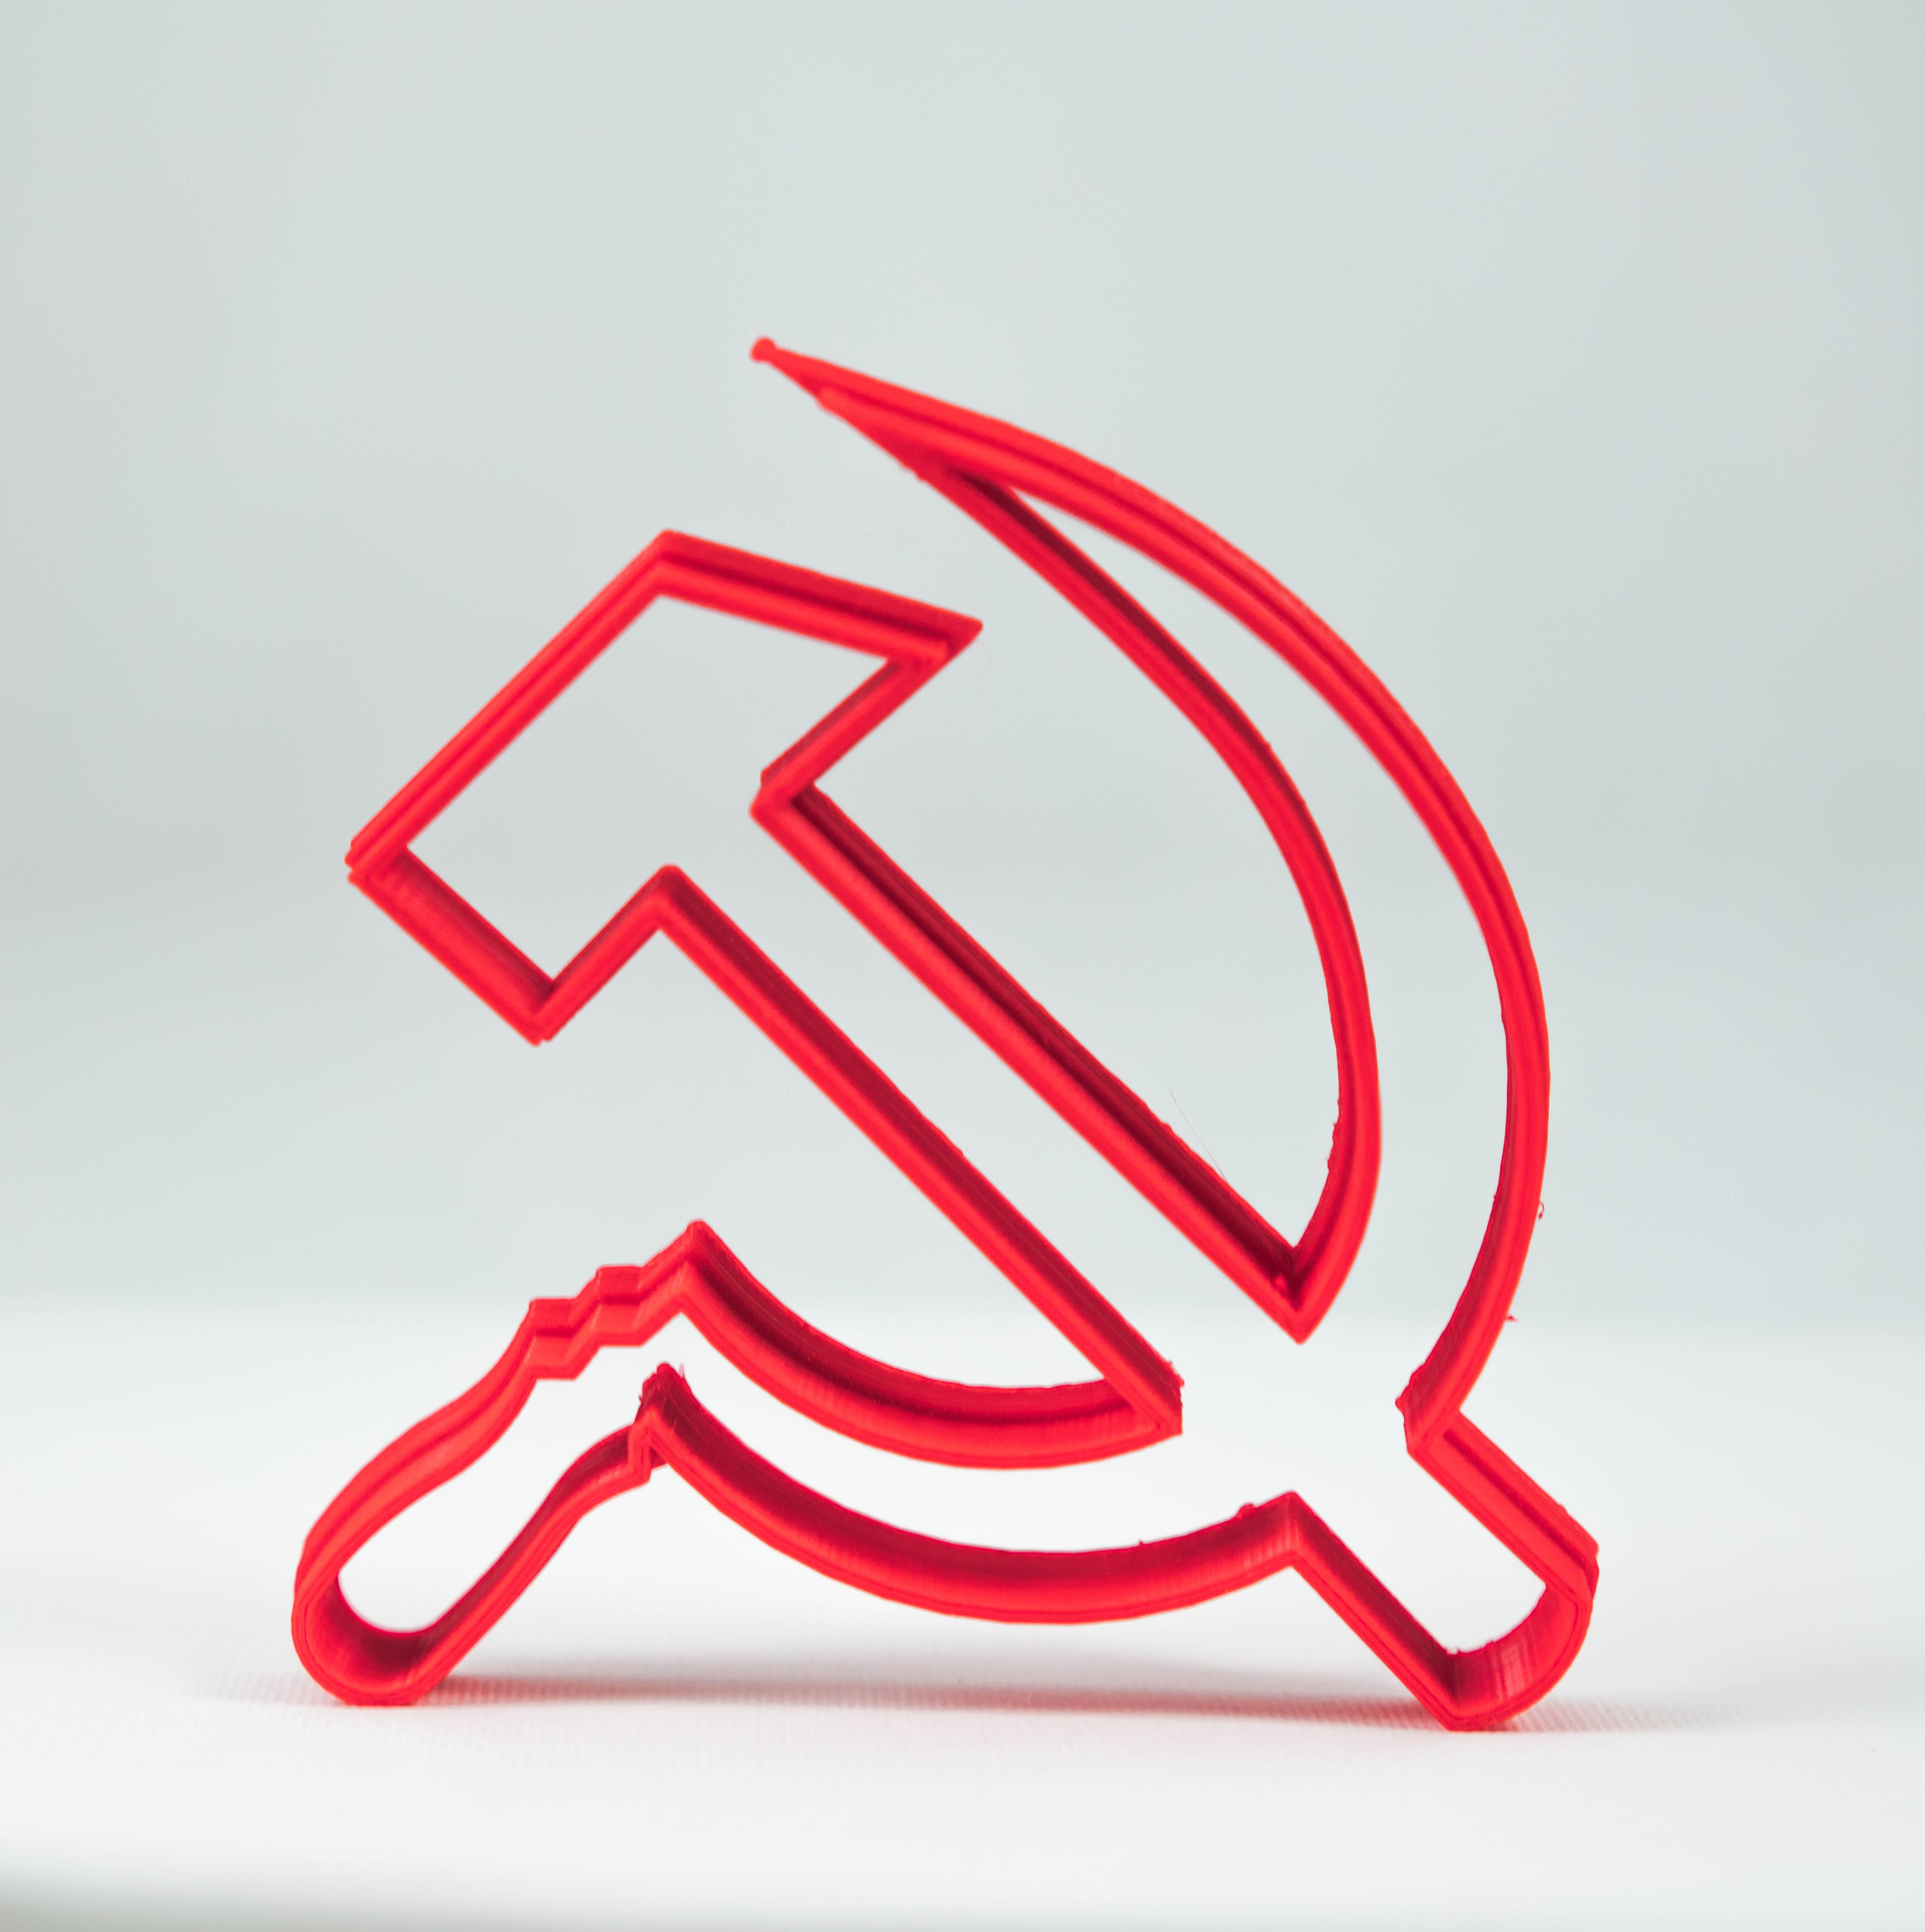 Soviet Union Flag Emoji Copy And Paste - About Flag Collections